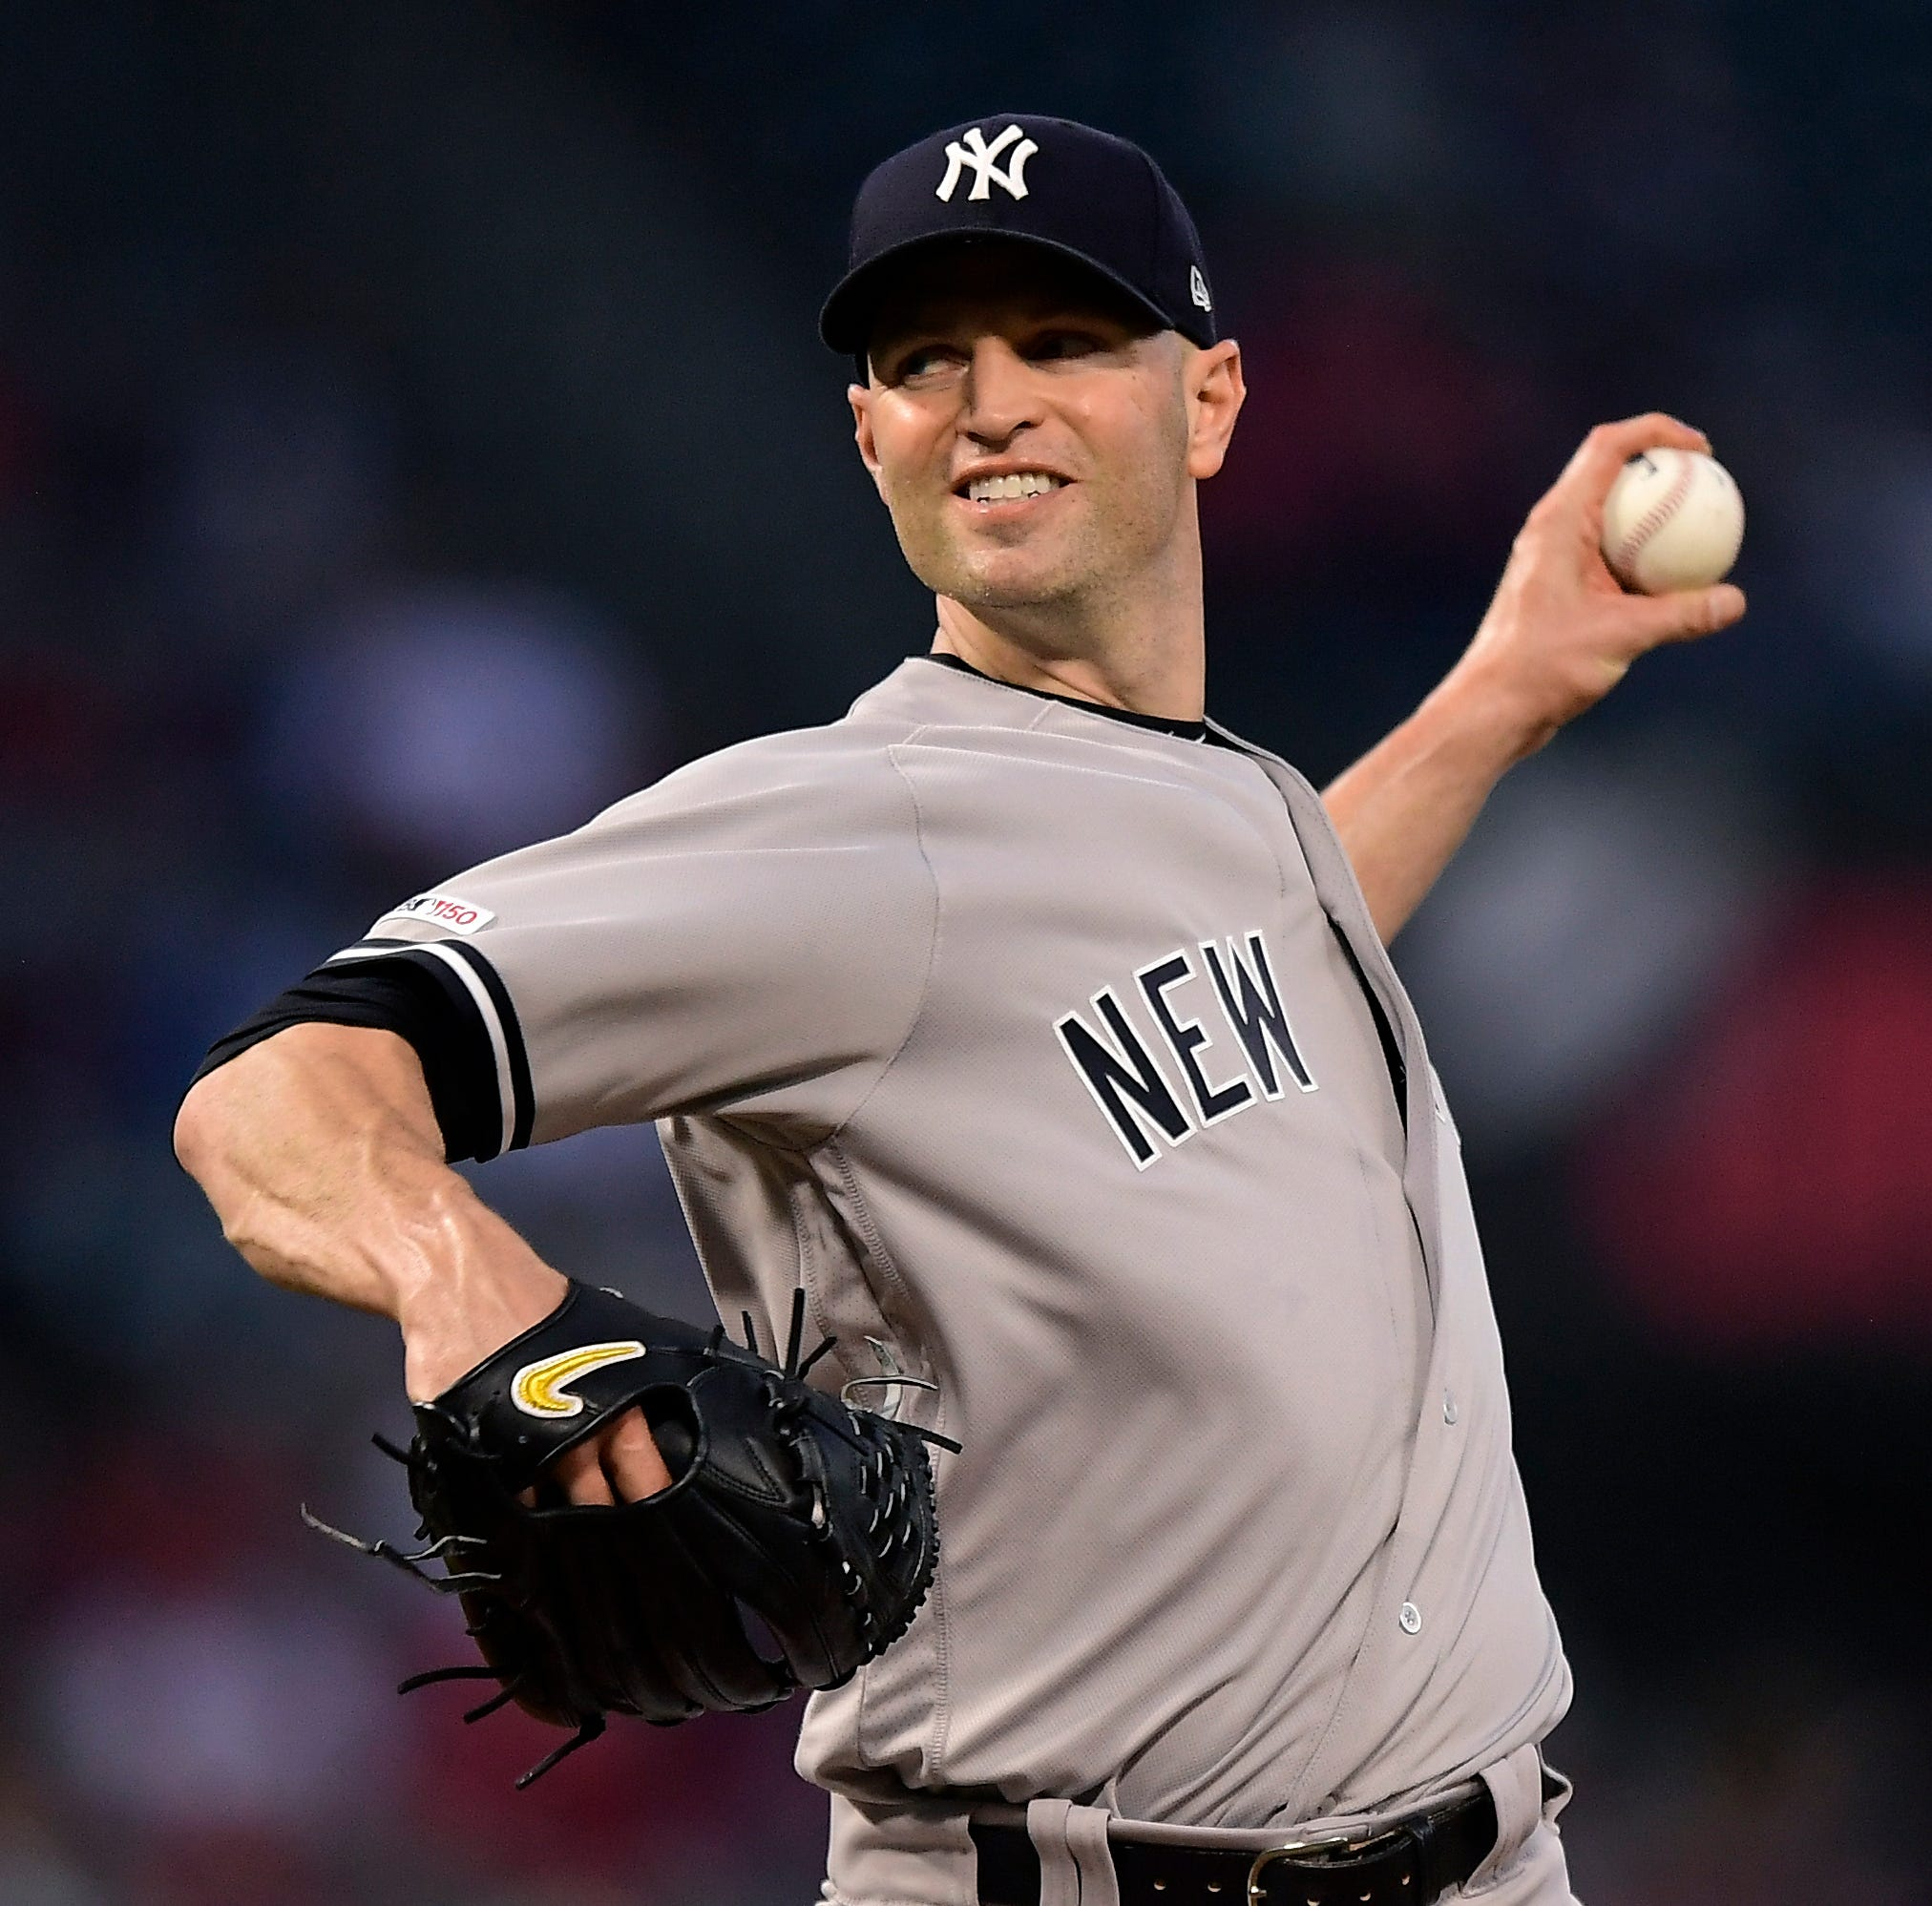 New York Yankees, Kansas City Royals announce Game 1 lineups for Saturday